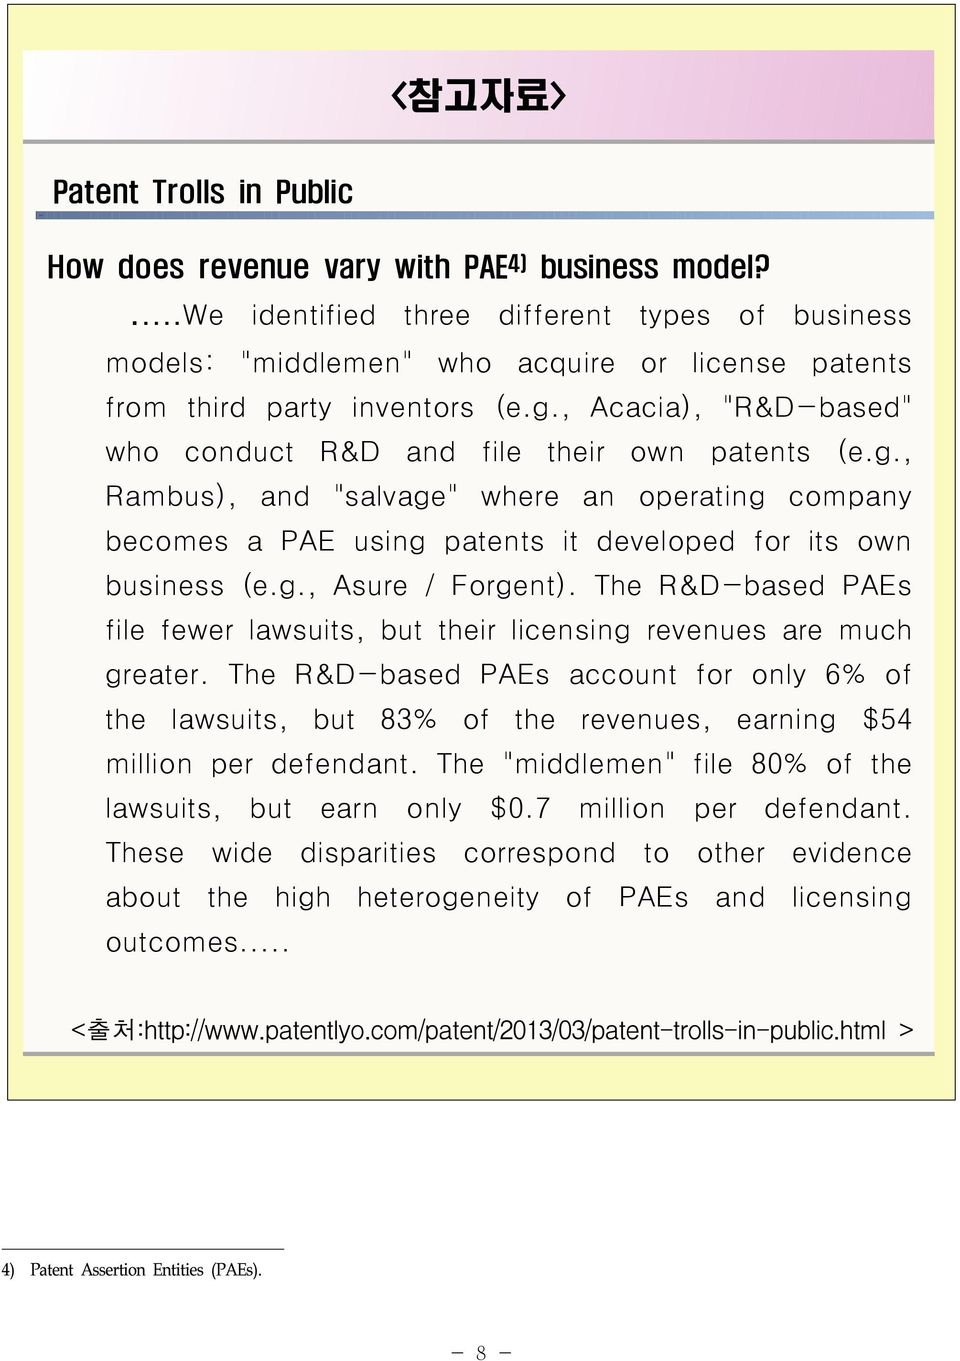 ", Acacia), ""R&D-based"" who conduct R&D and file their own patents (e.g., Rambus), and ""salvage"" where an operating company becomes a PAE using patents it developed for its own business (e.g., Asure / Forgent)."